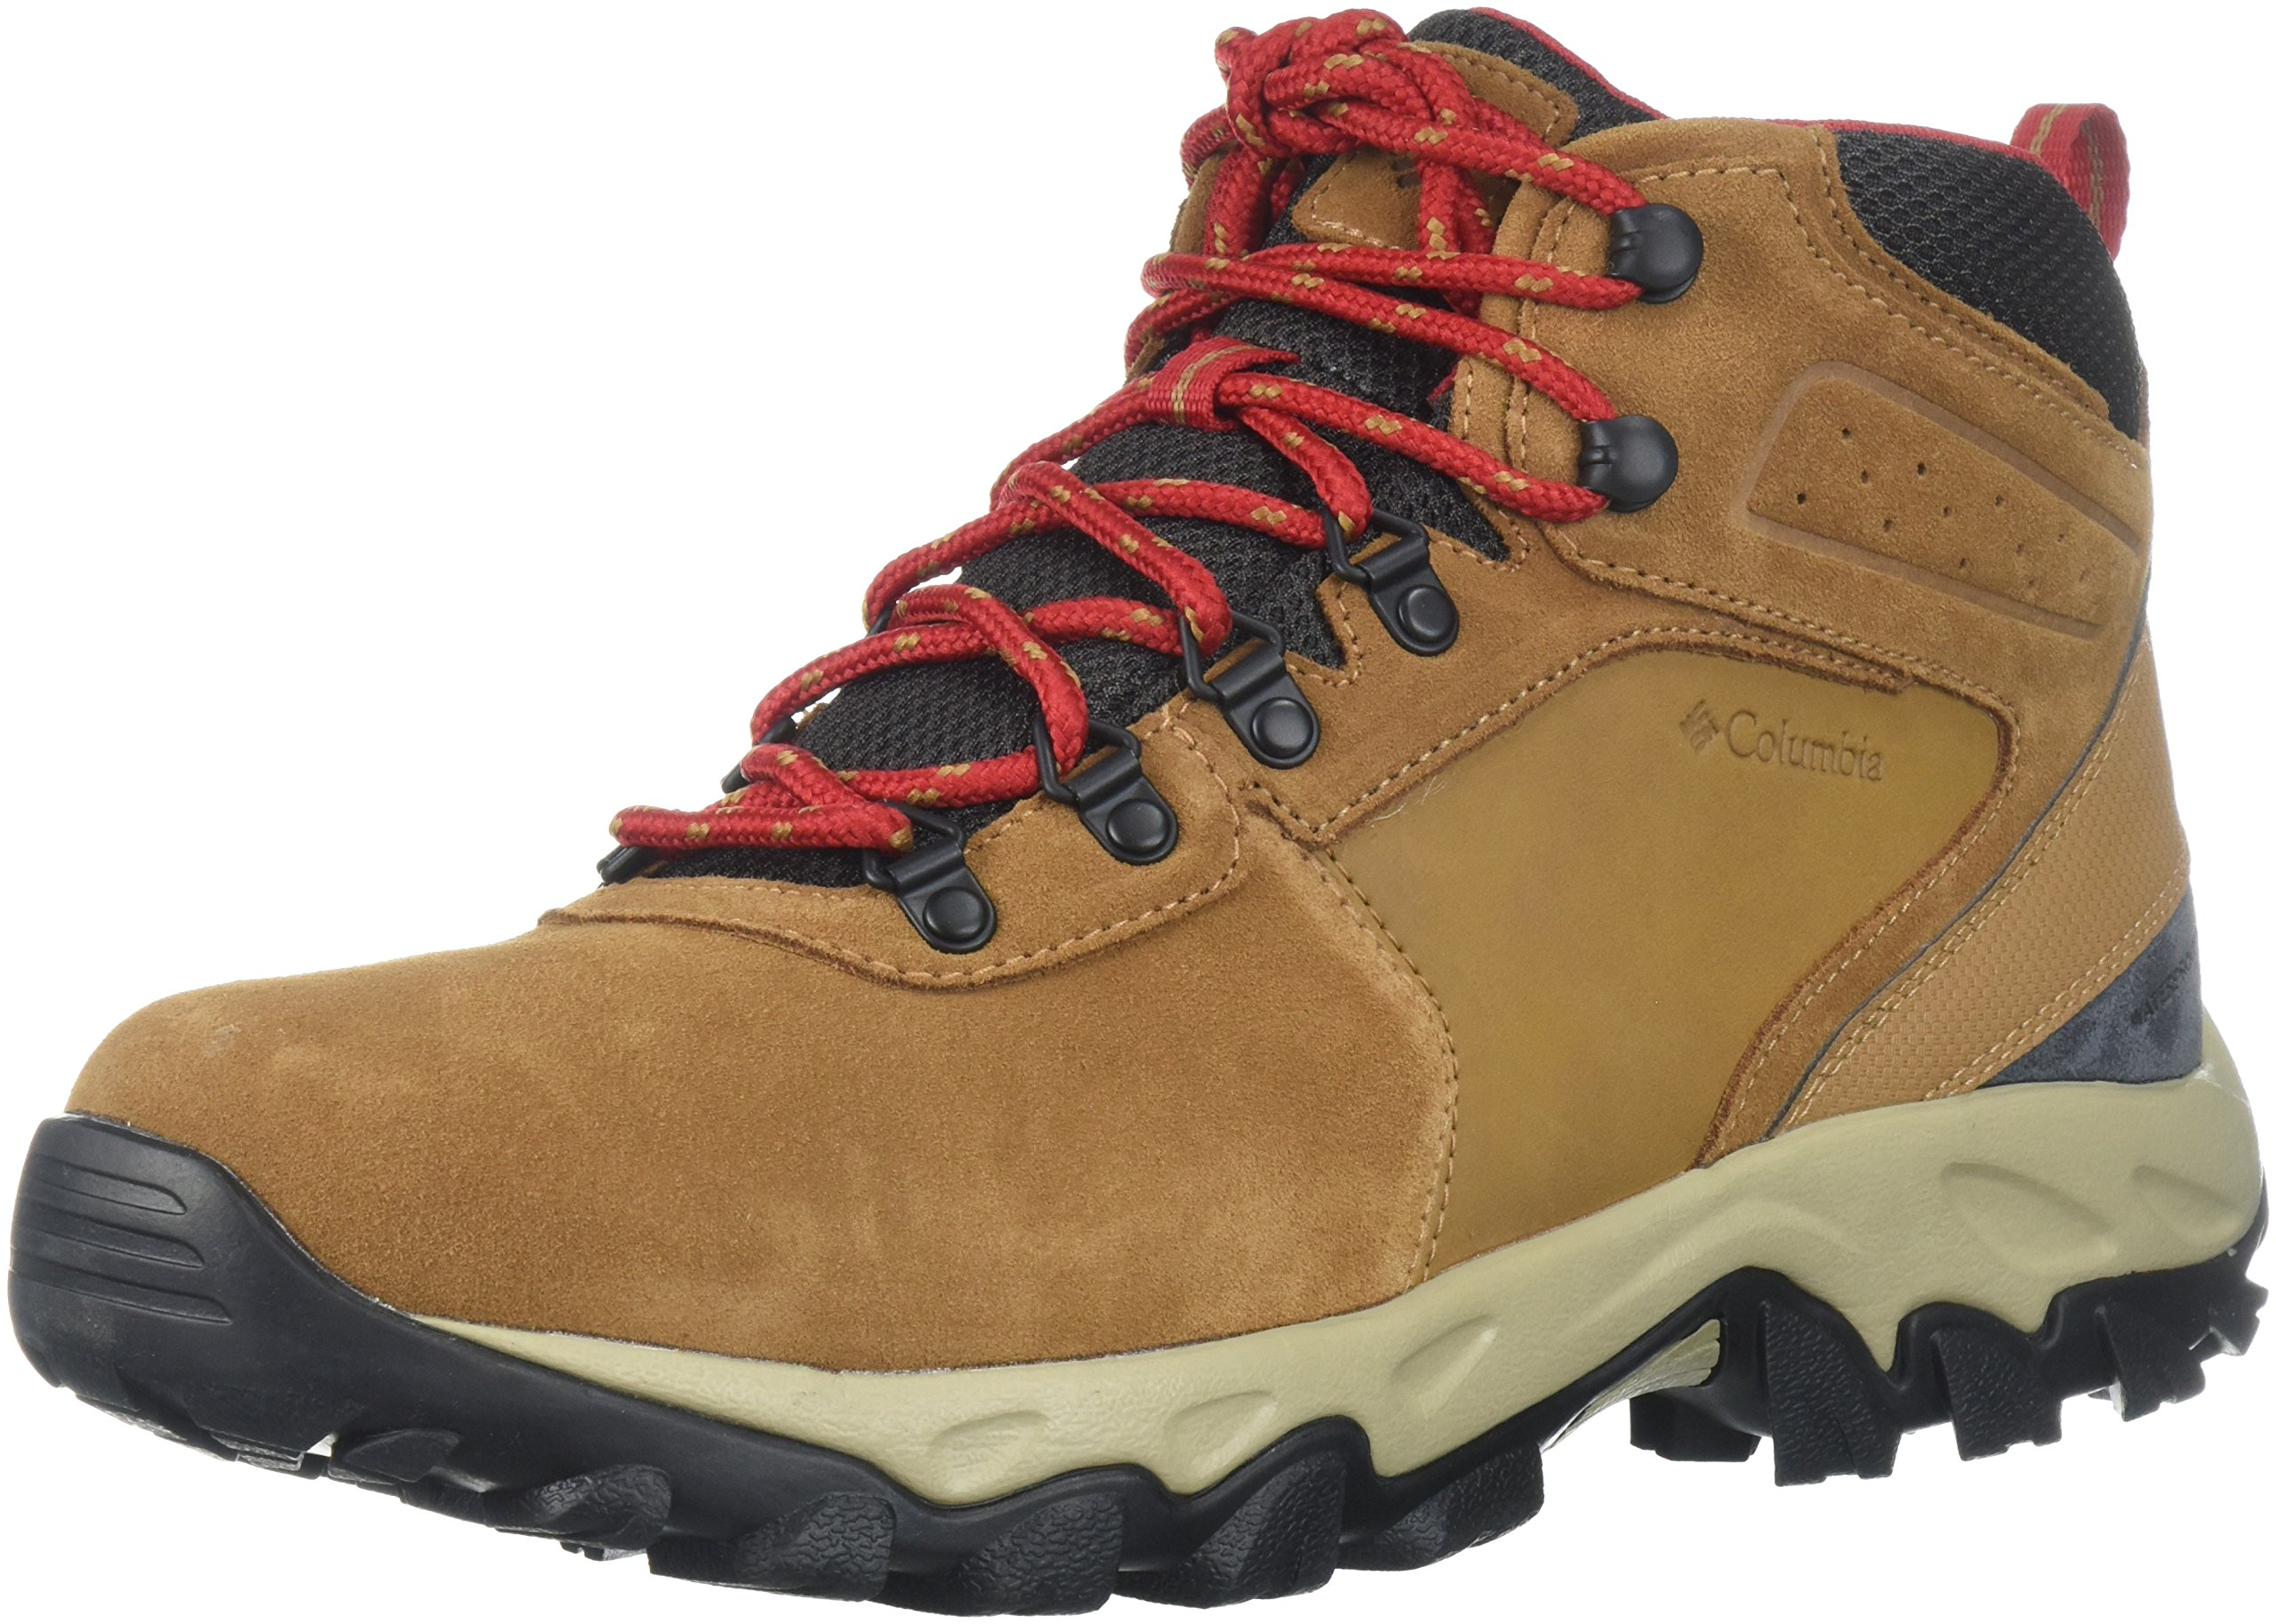 Columbia Men's Newton Ridge Plus II Suede Waterproof Boot, Breathable with High-Traction Grip Hiking, elk, mountain red 7 Regular US